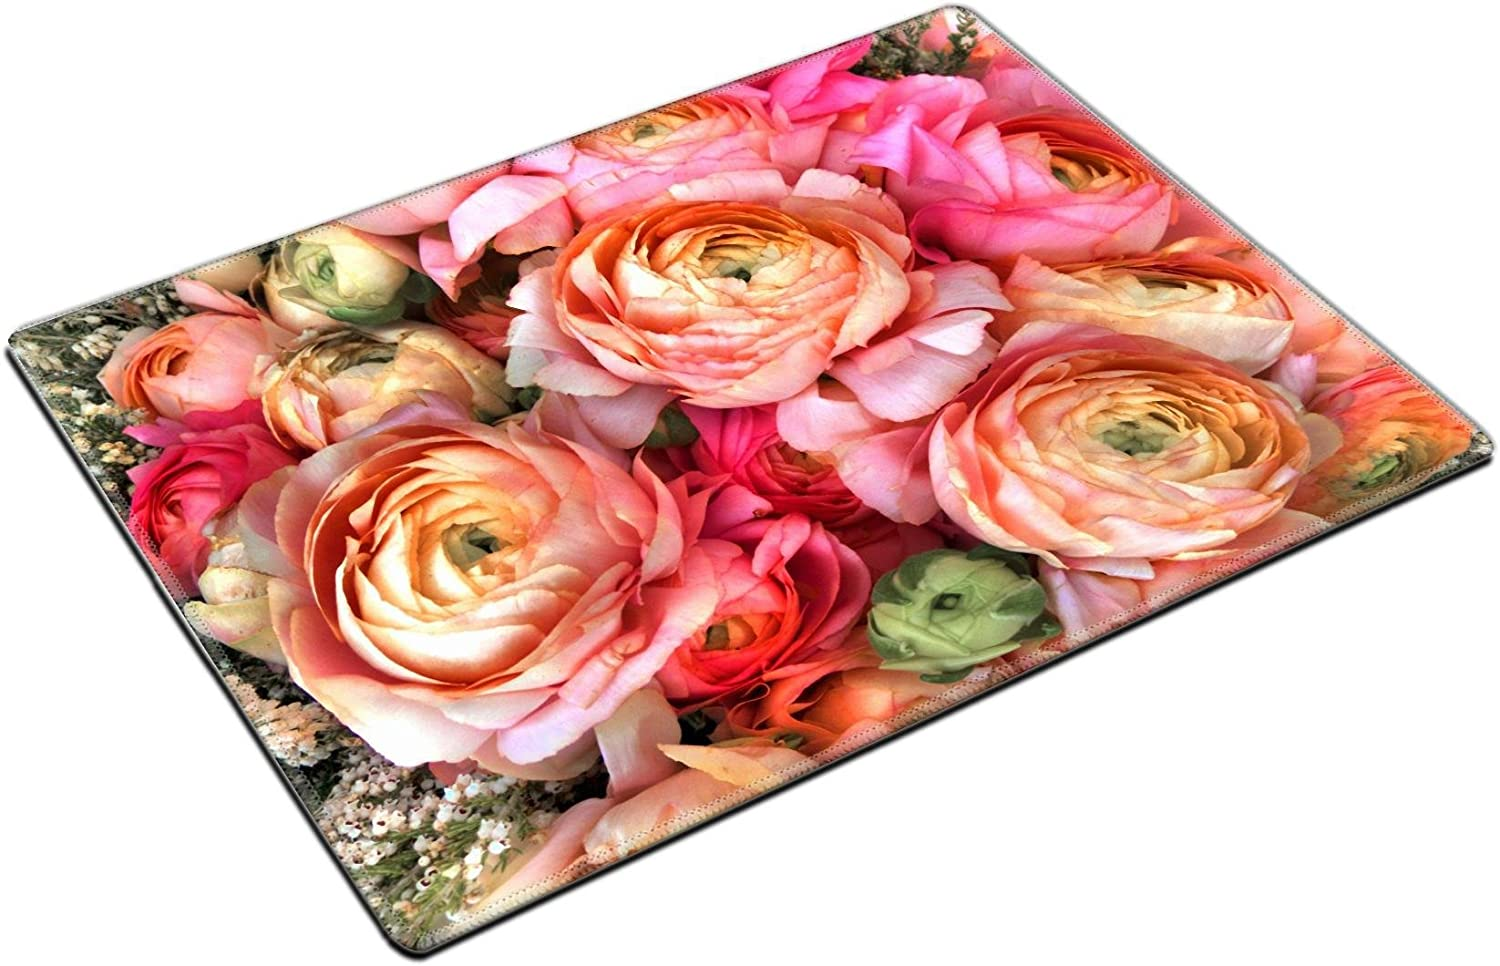 MSD Natural Rubber Gaming Mousepad Bouquet of pink peony Floral pattern Image ID 23898219